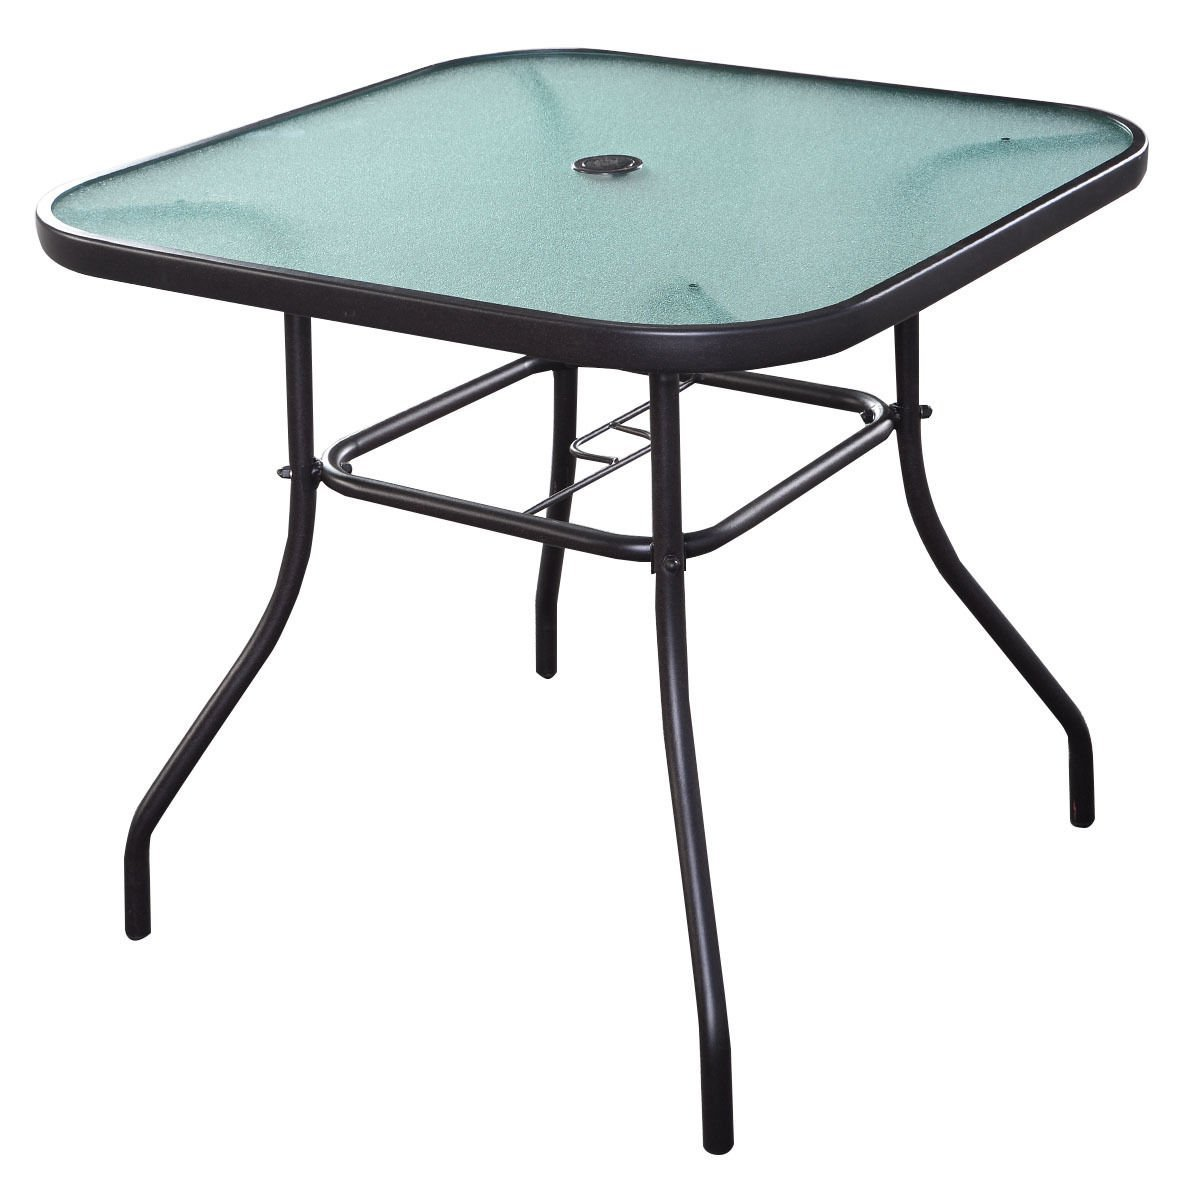 "Giantex 32 1/2"" Patio Square Bar Dining Table Glass Deck"